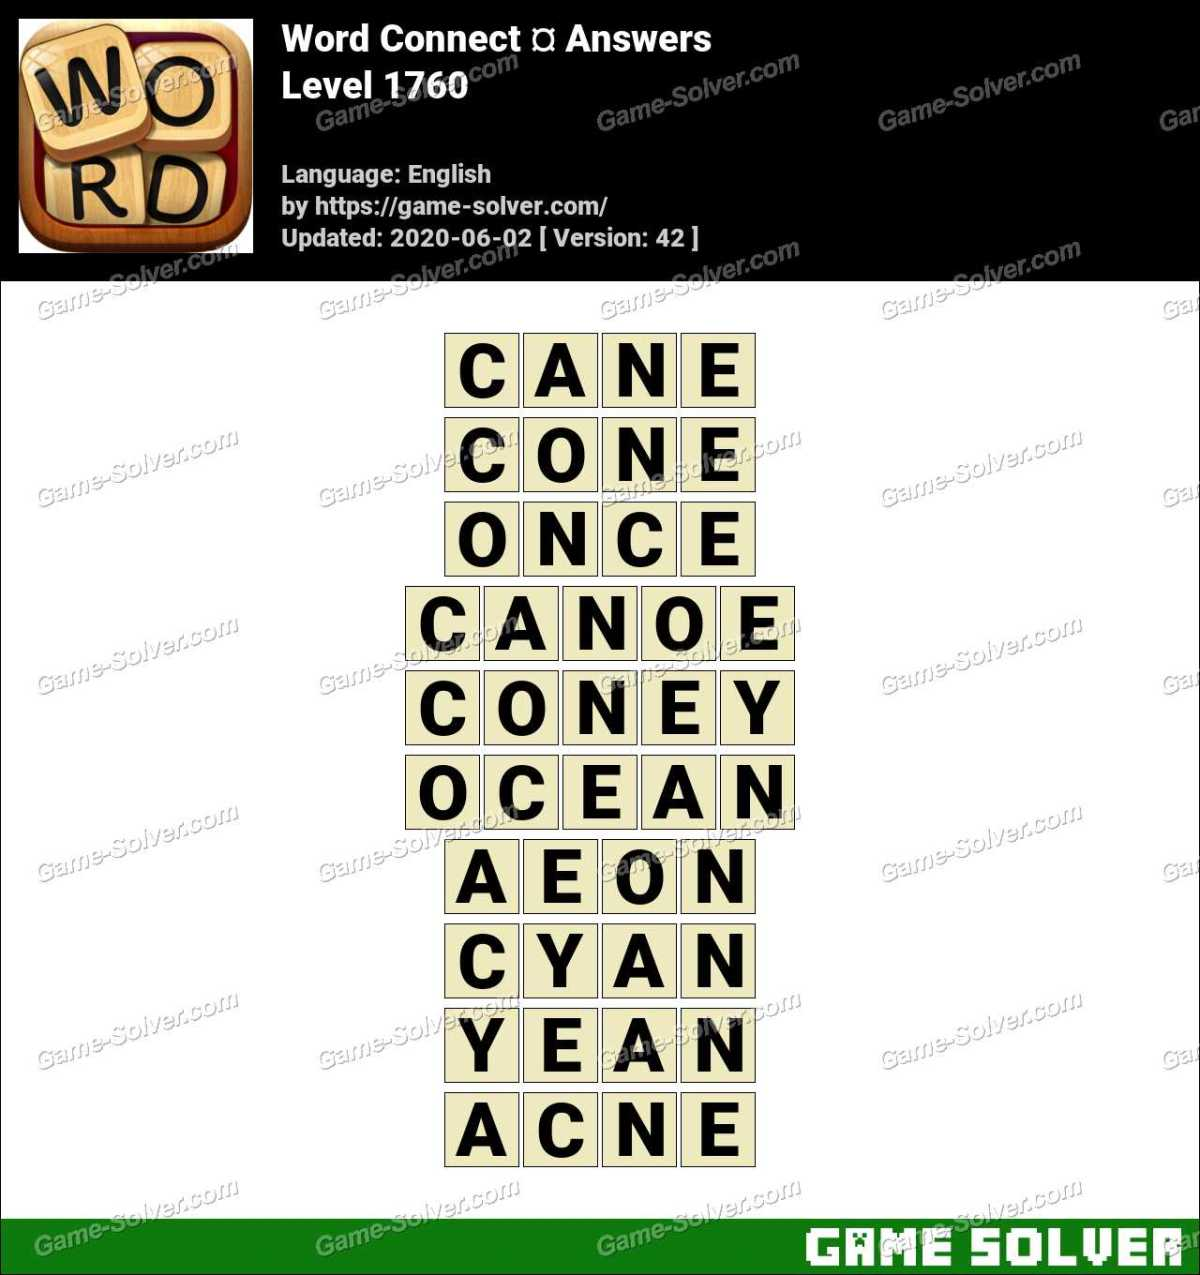 Word Connect Level 1760 Answers